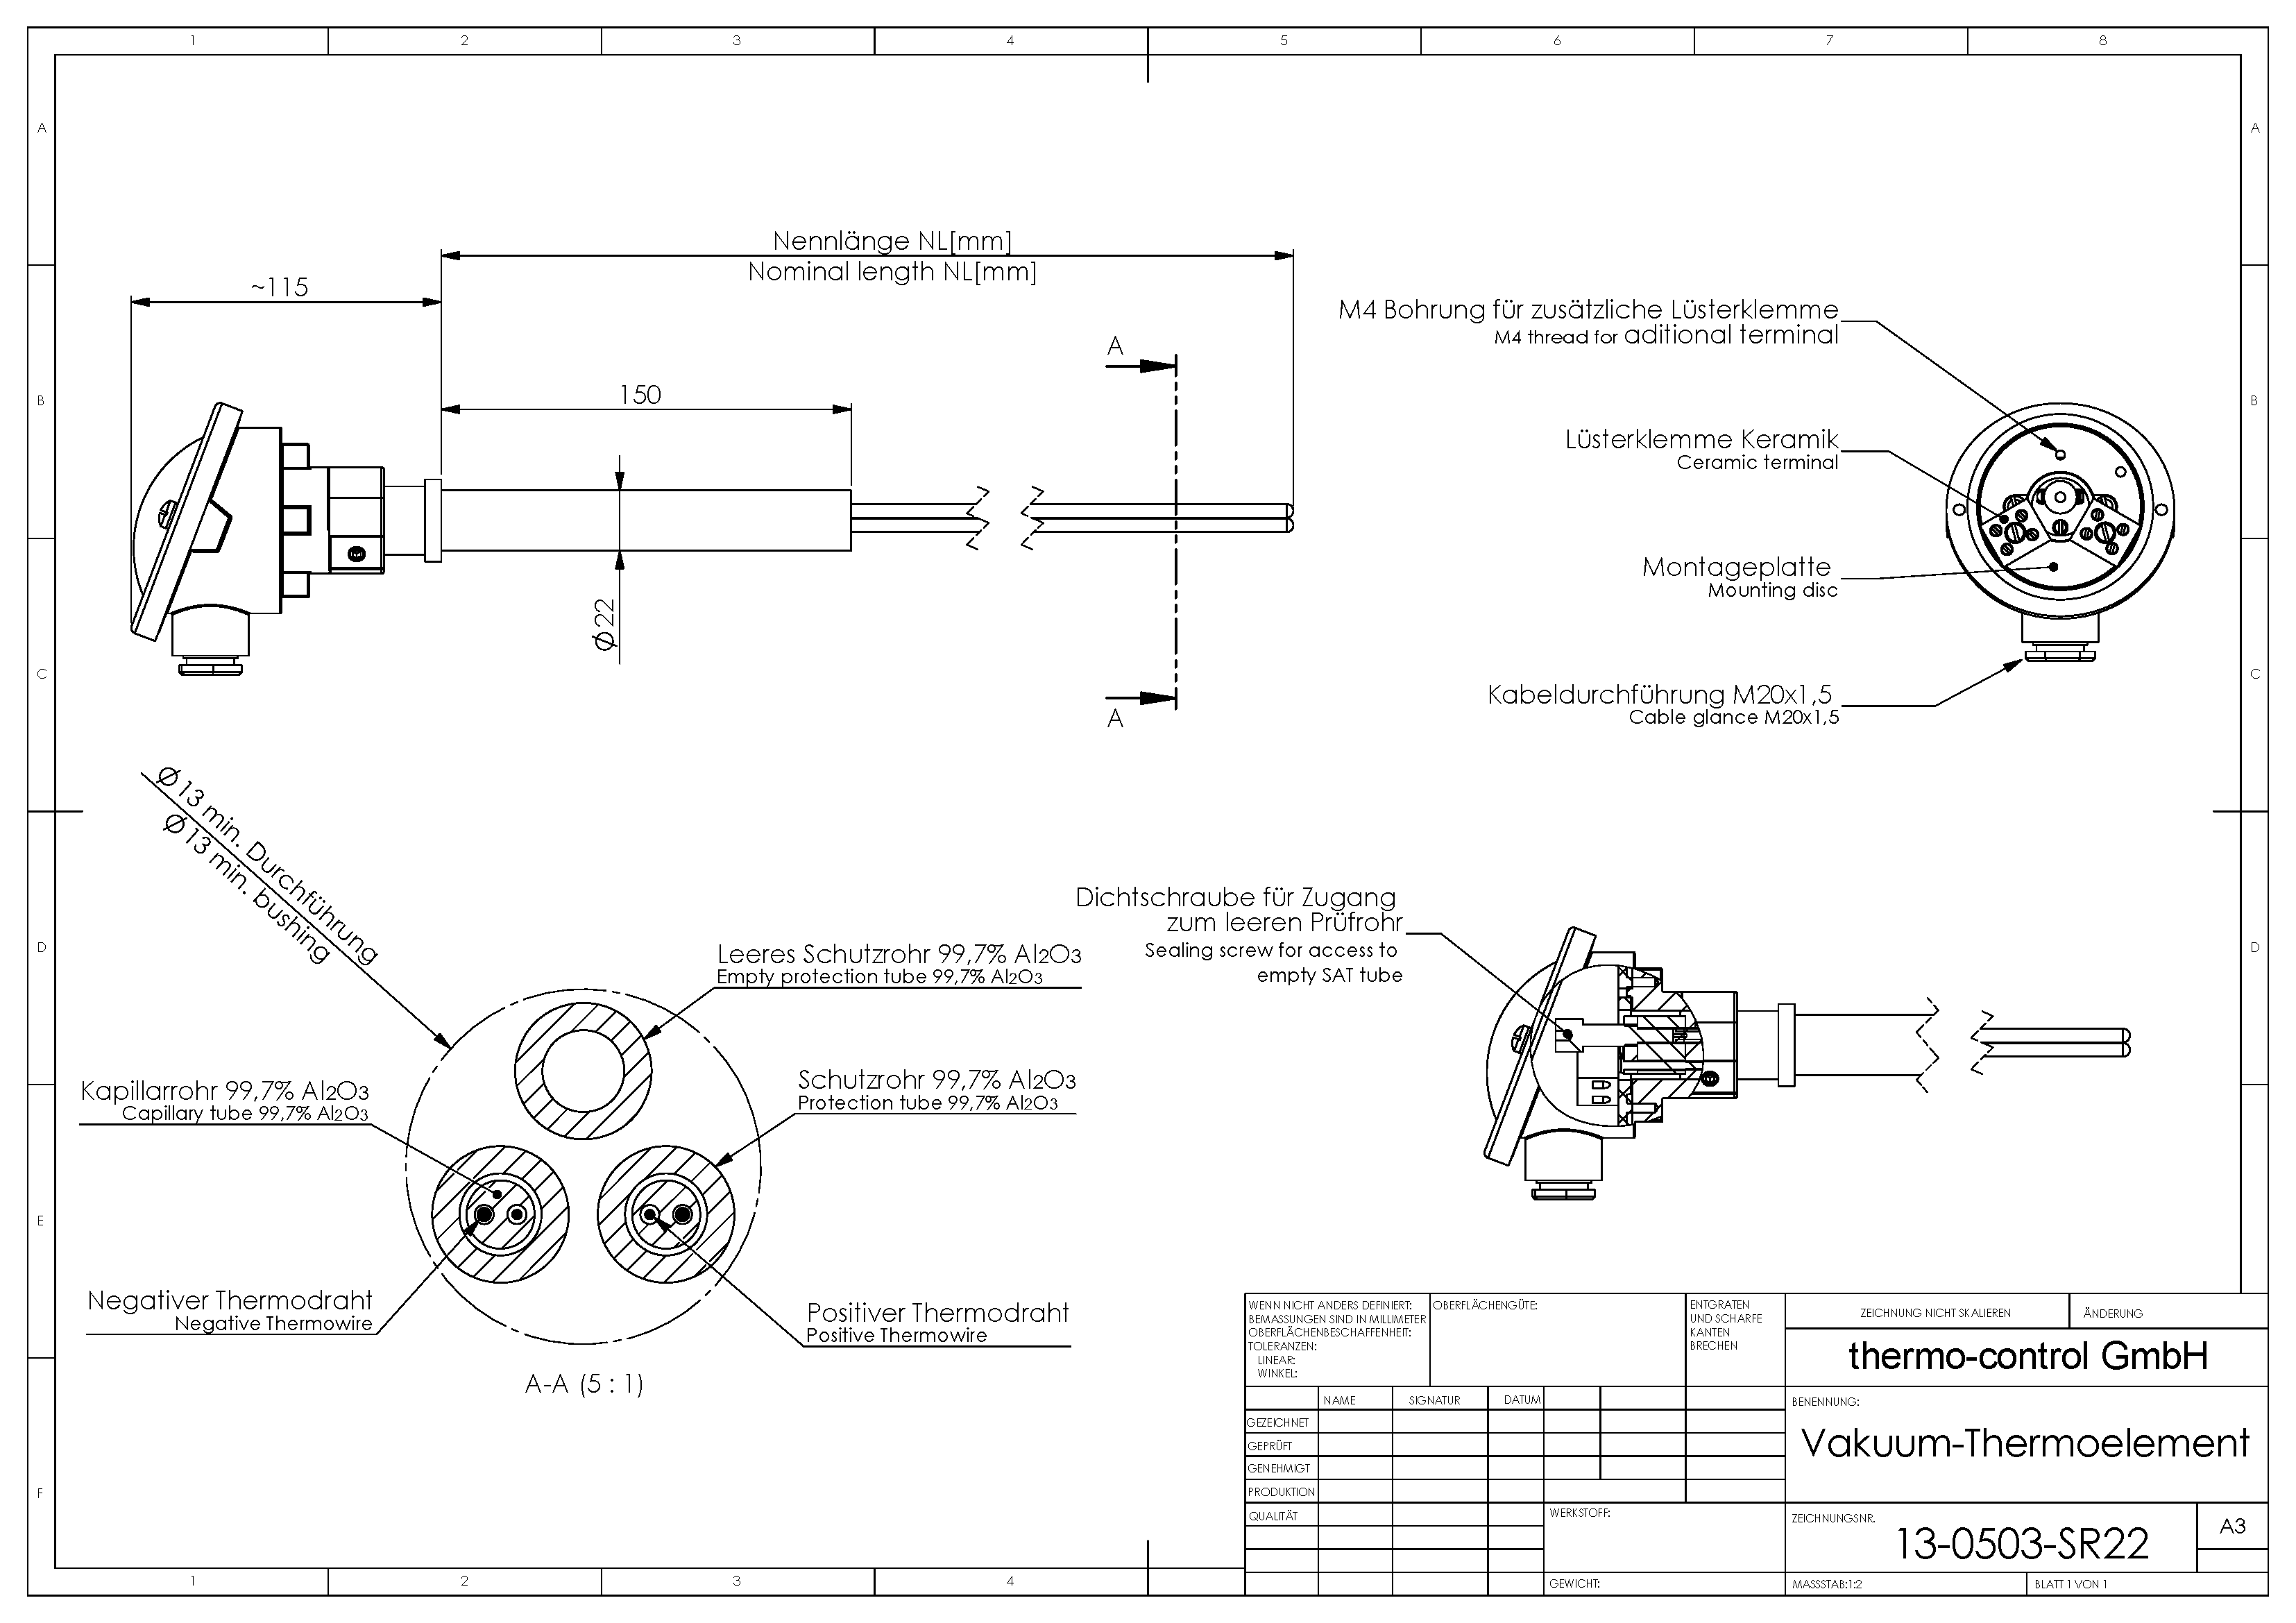 Drawing Vacuum-Thermocouple with 22x150 steel tube